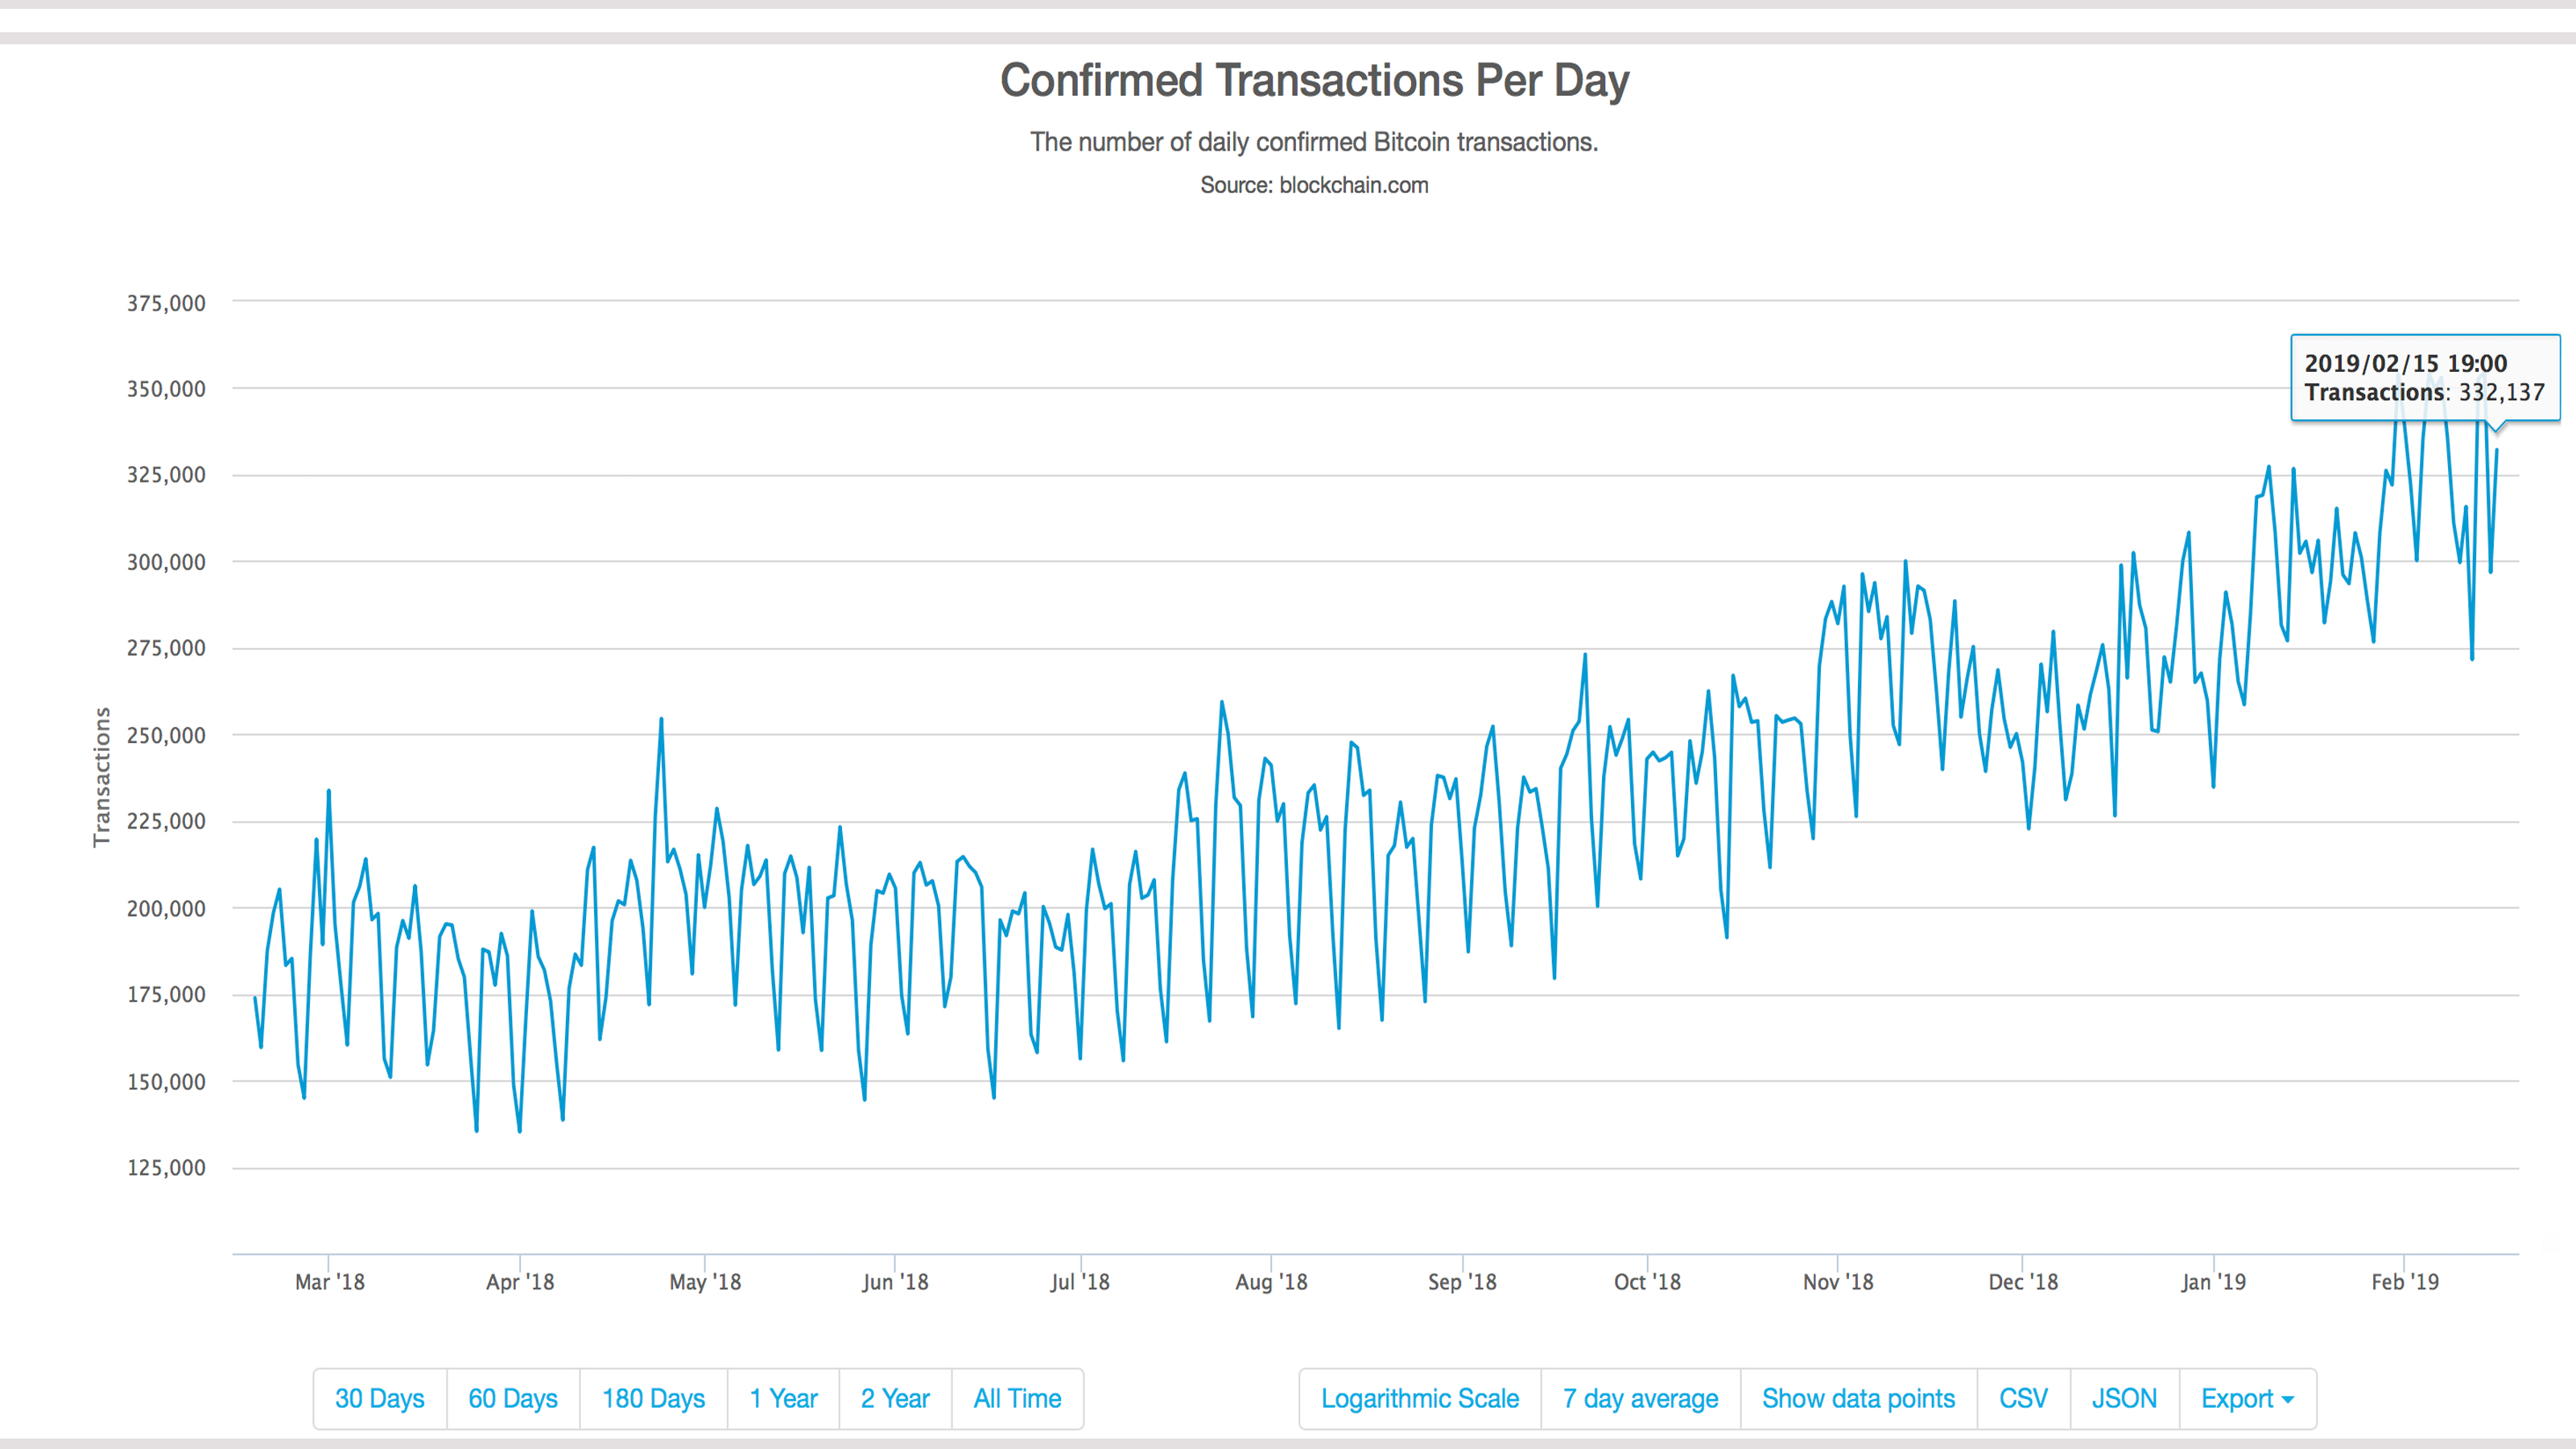 More Than 30% of BTC Traffic Stems from the Veriblock Project